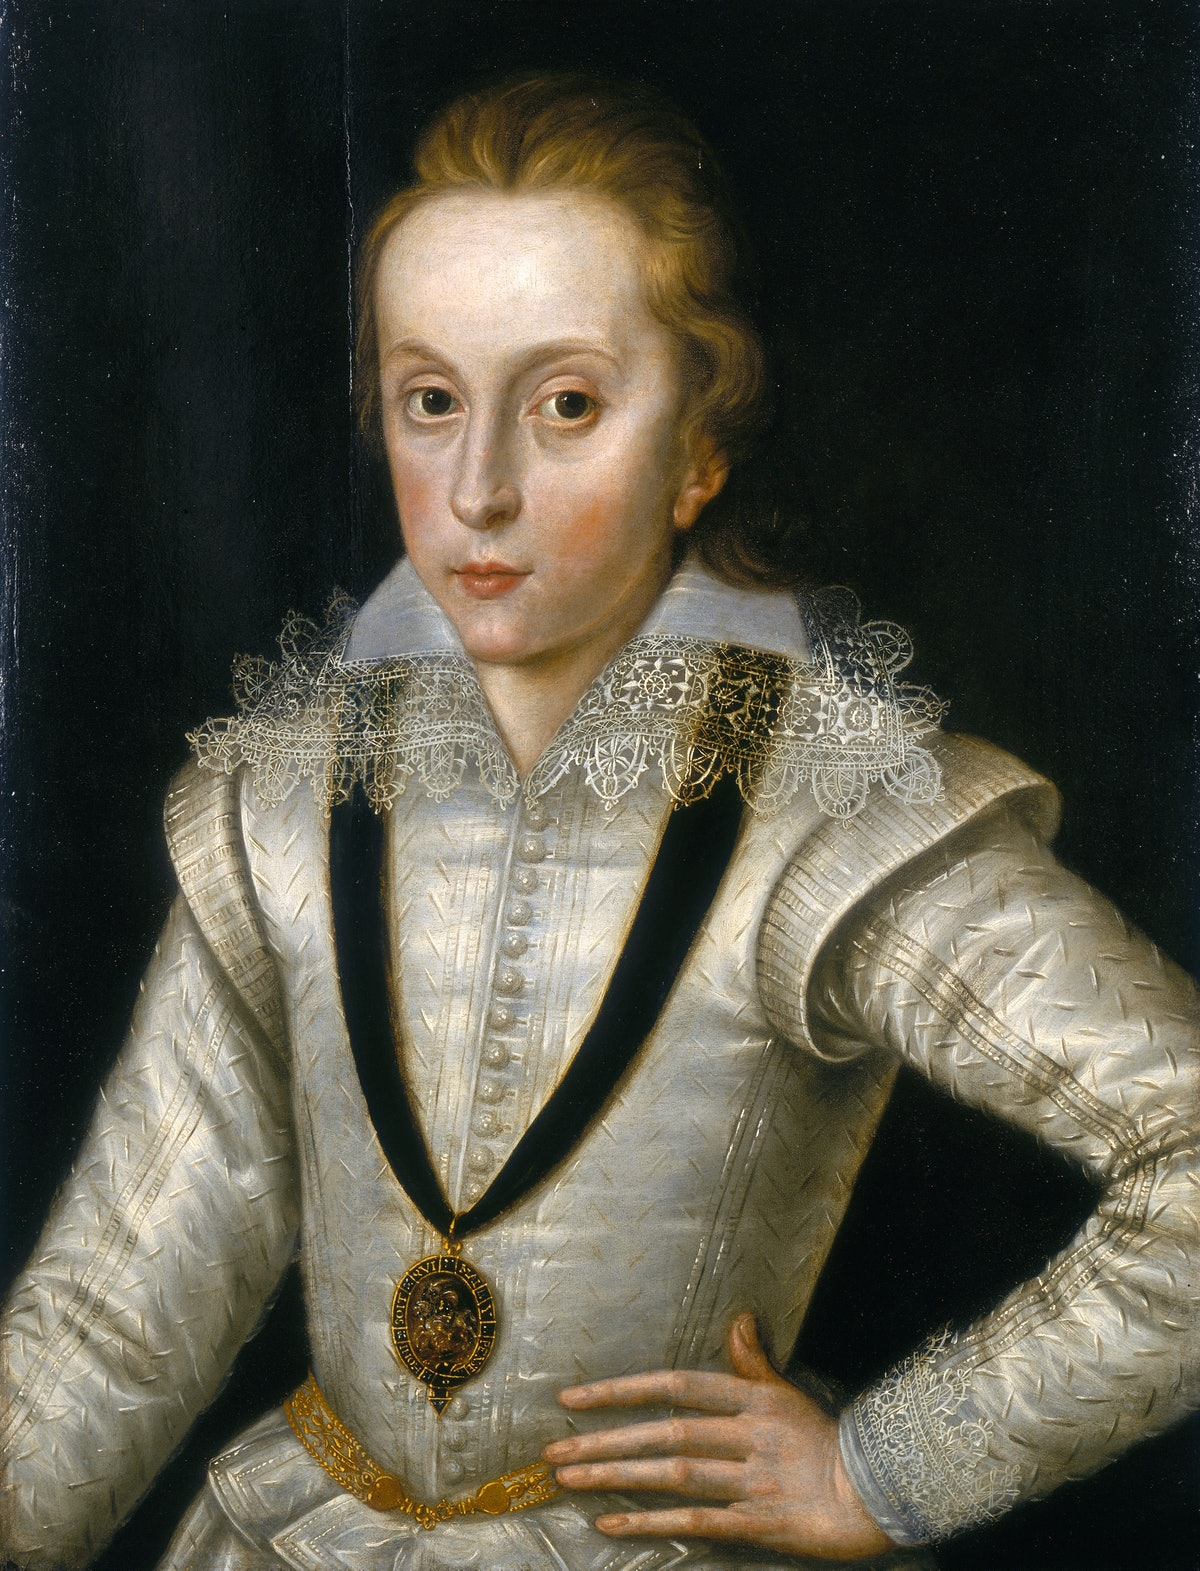 'Portrait of Henry Frederick, Prince of Wales (1594-1612)', c1604. The prince wears a lace collar an...